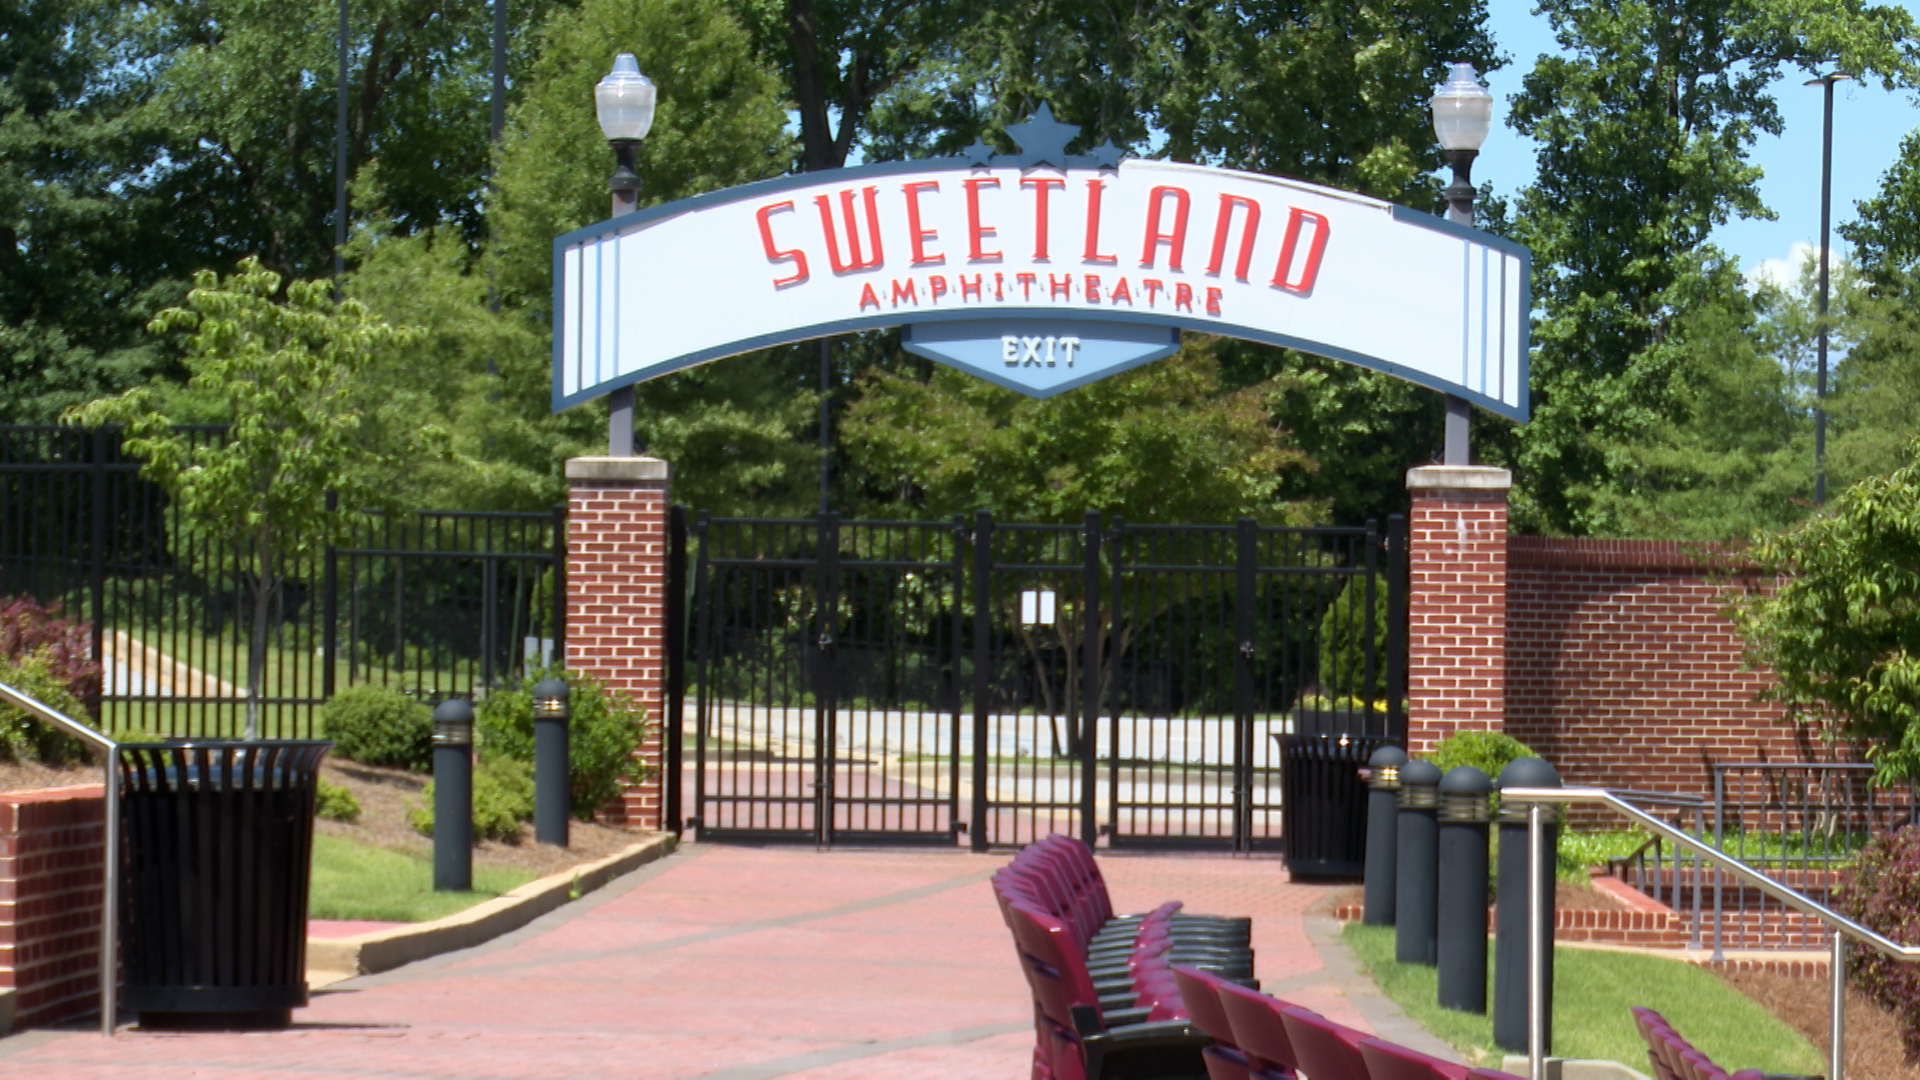 Sweetland Amphitheater